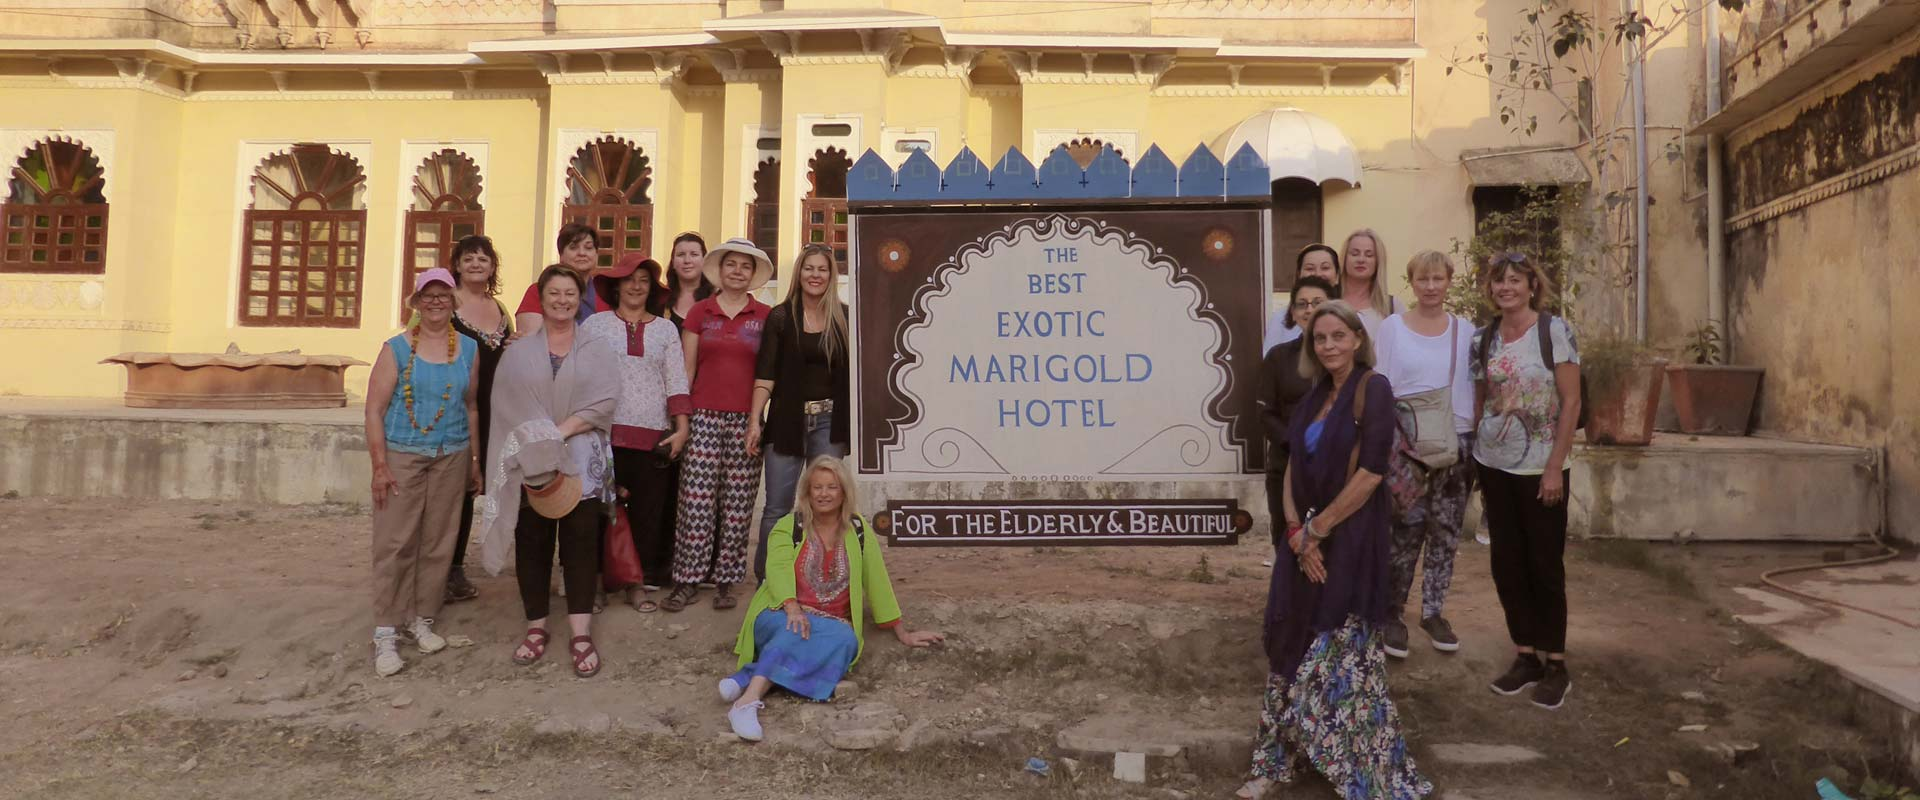 Exotic Marigold Hotel and Udaipur Short Stay